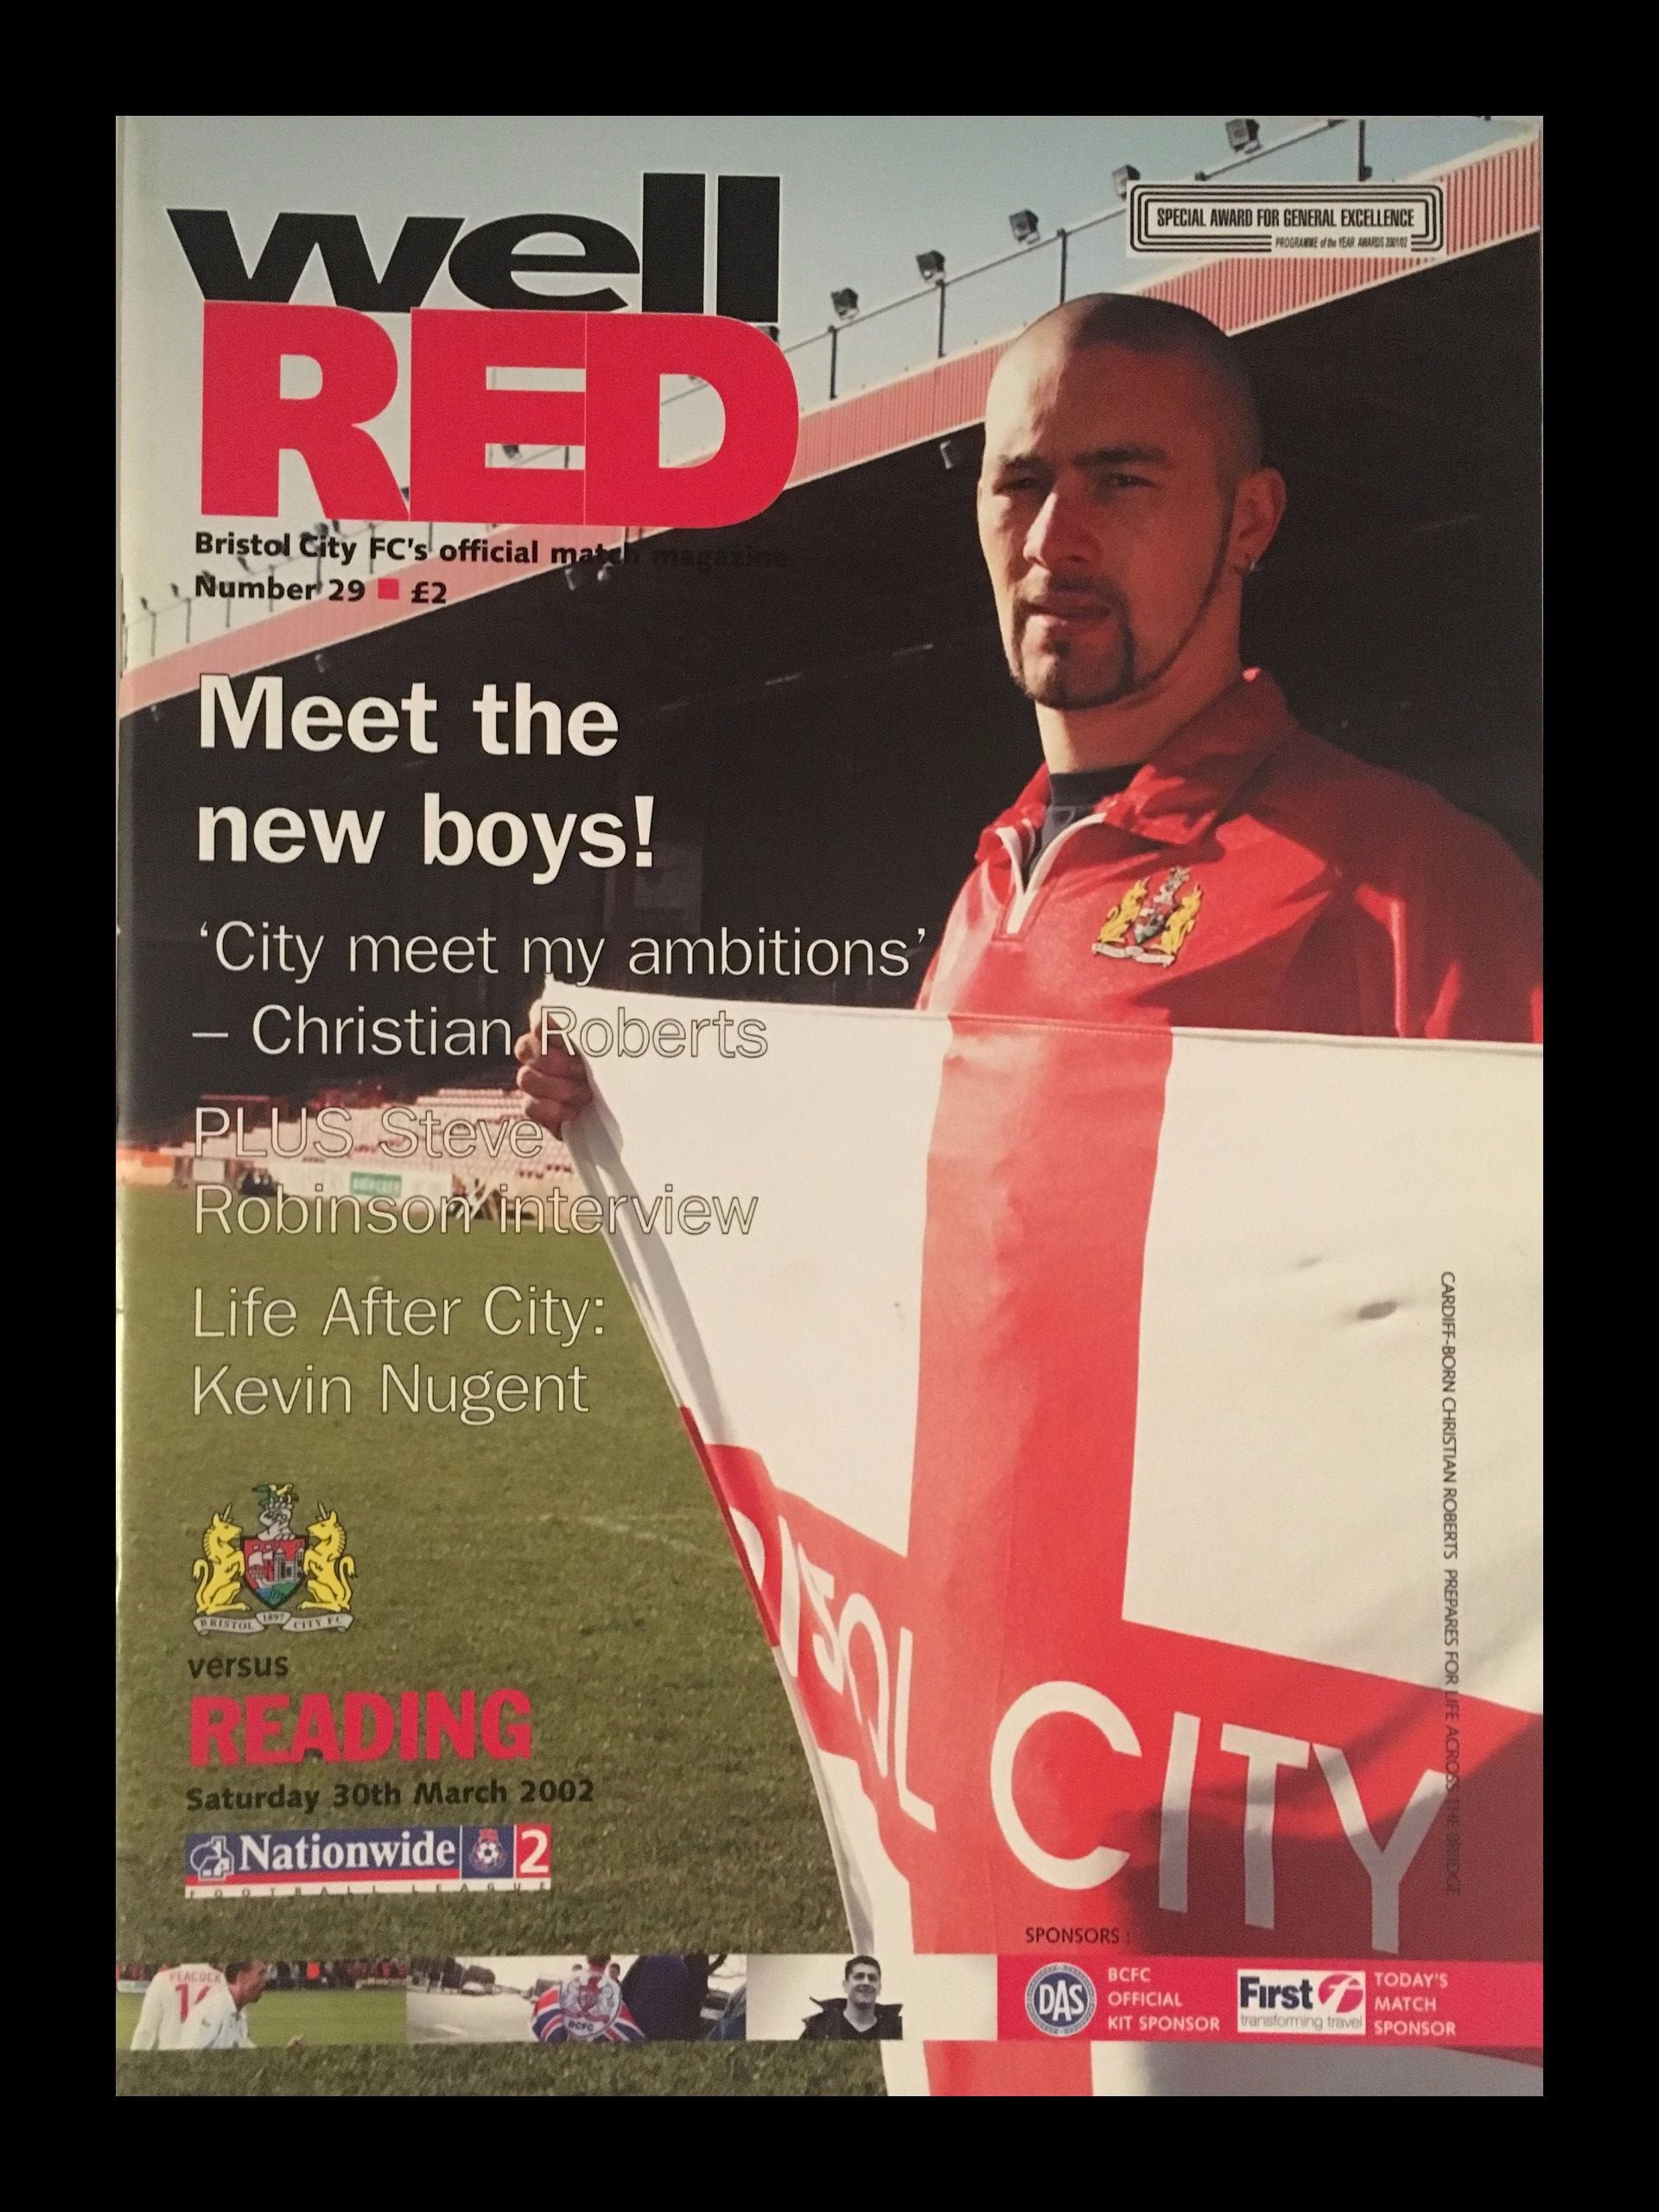 Bristol City v Reading 30-03-2002 Programme